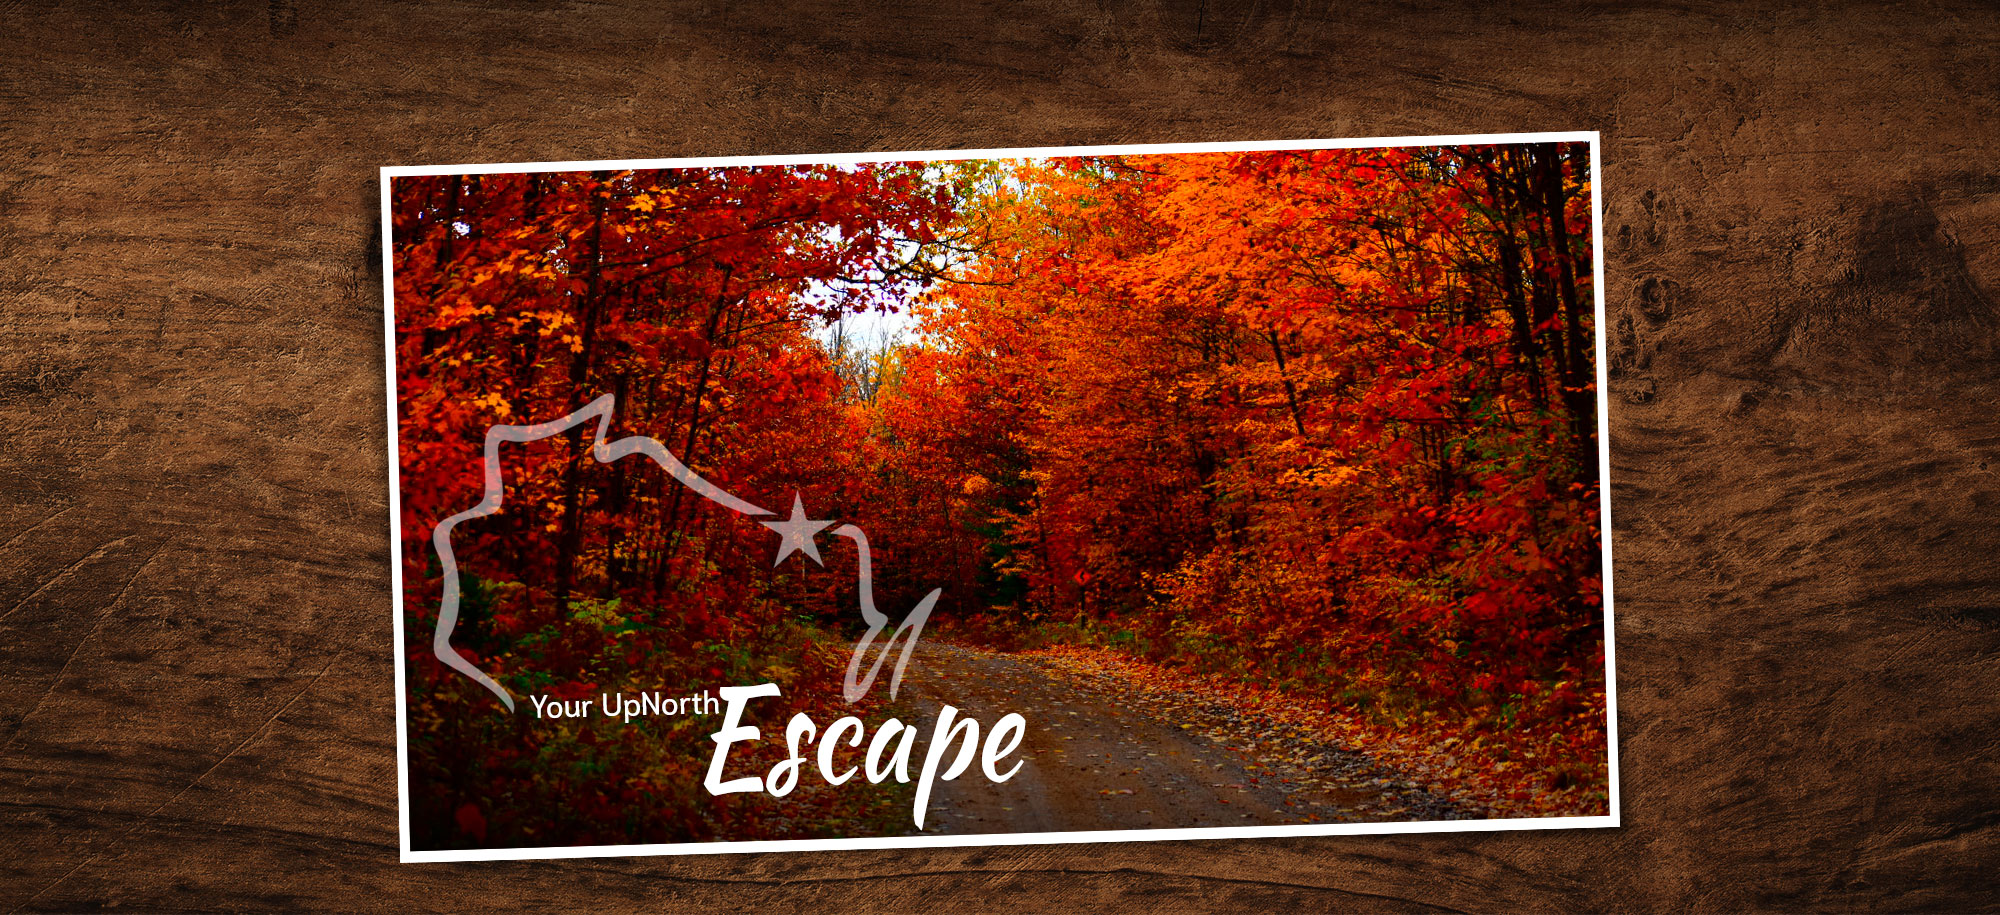 Your UpNorth Escape